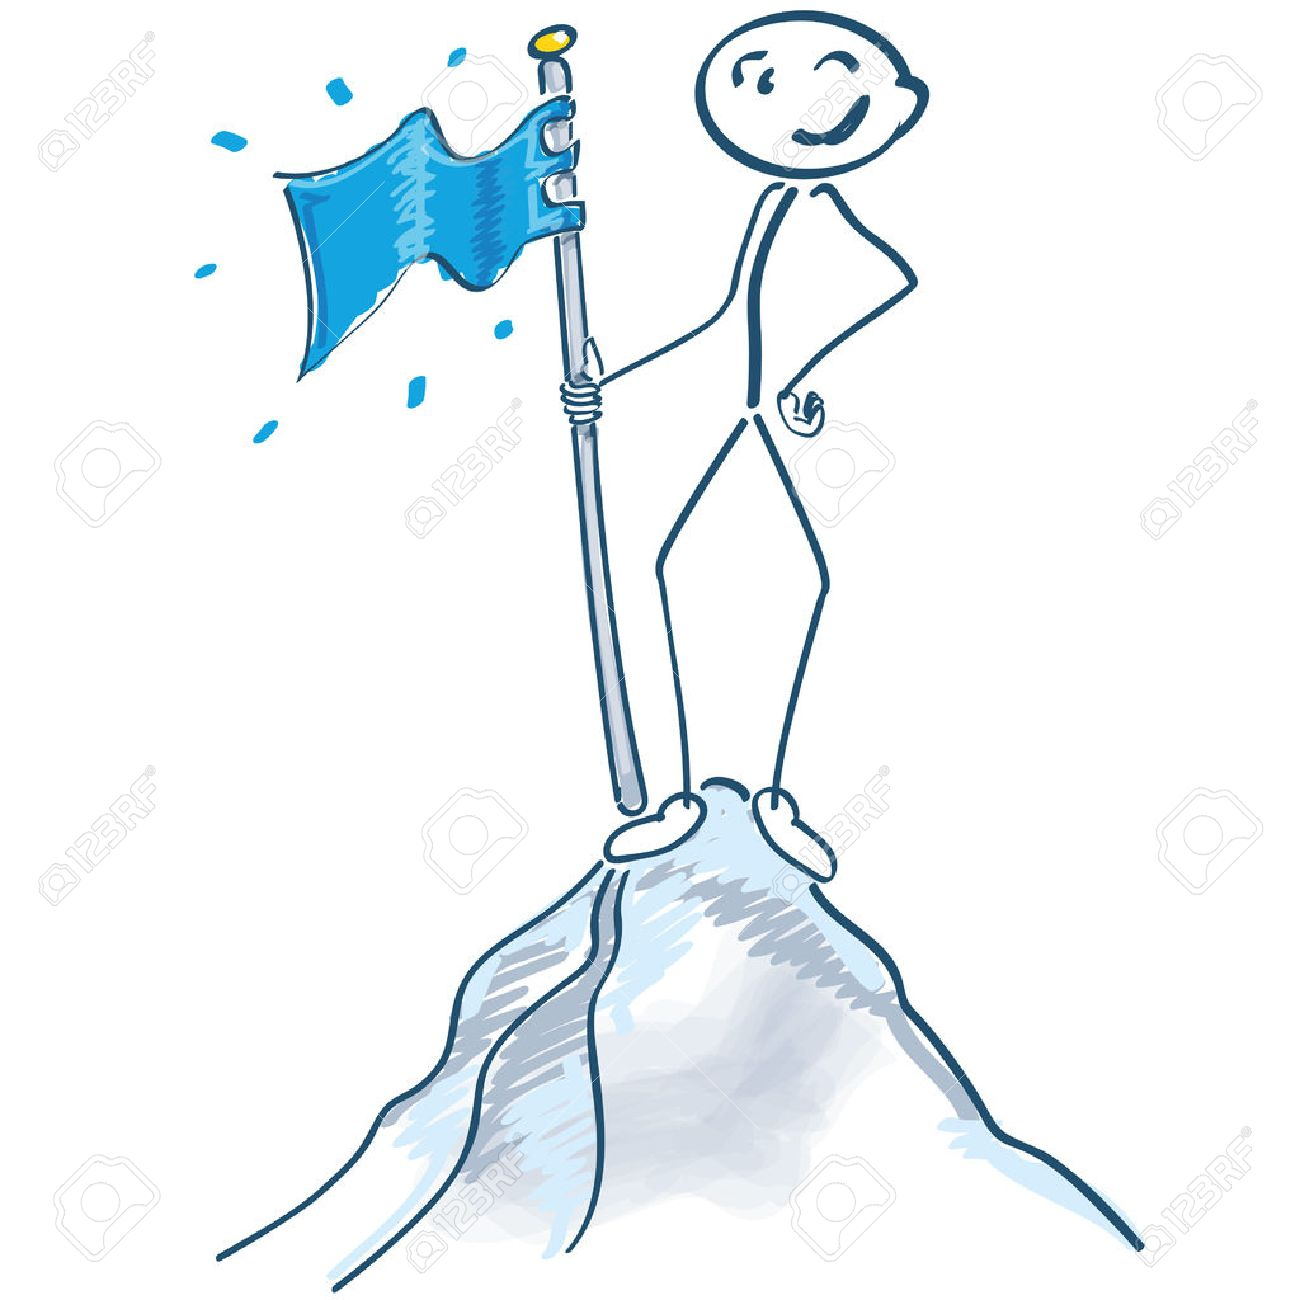 Stick figure with flag on a mountain top - 39265888